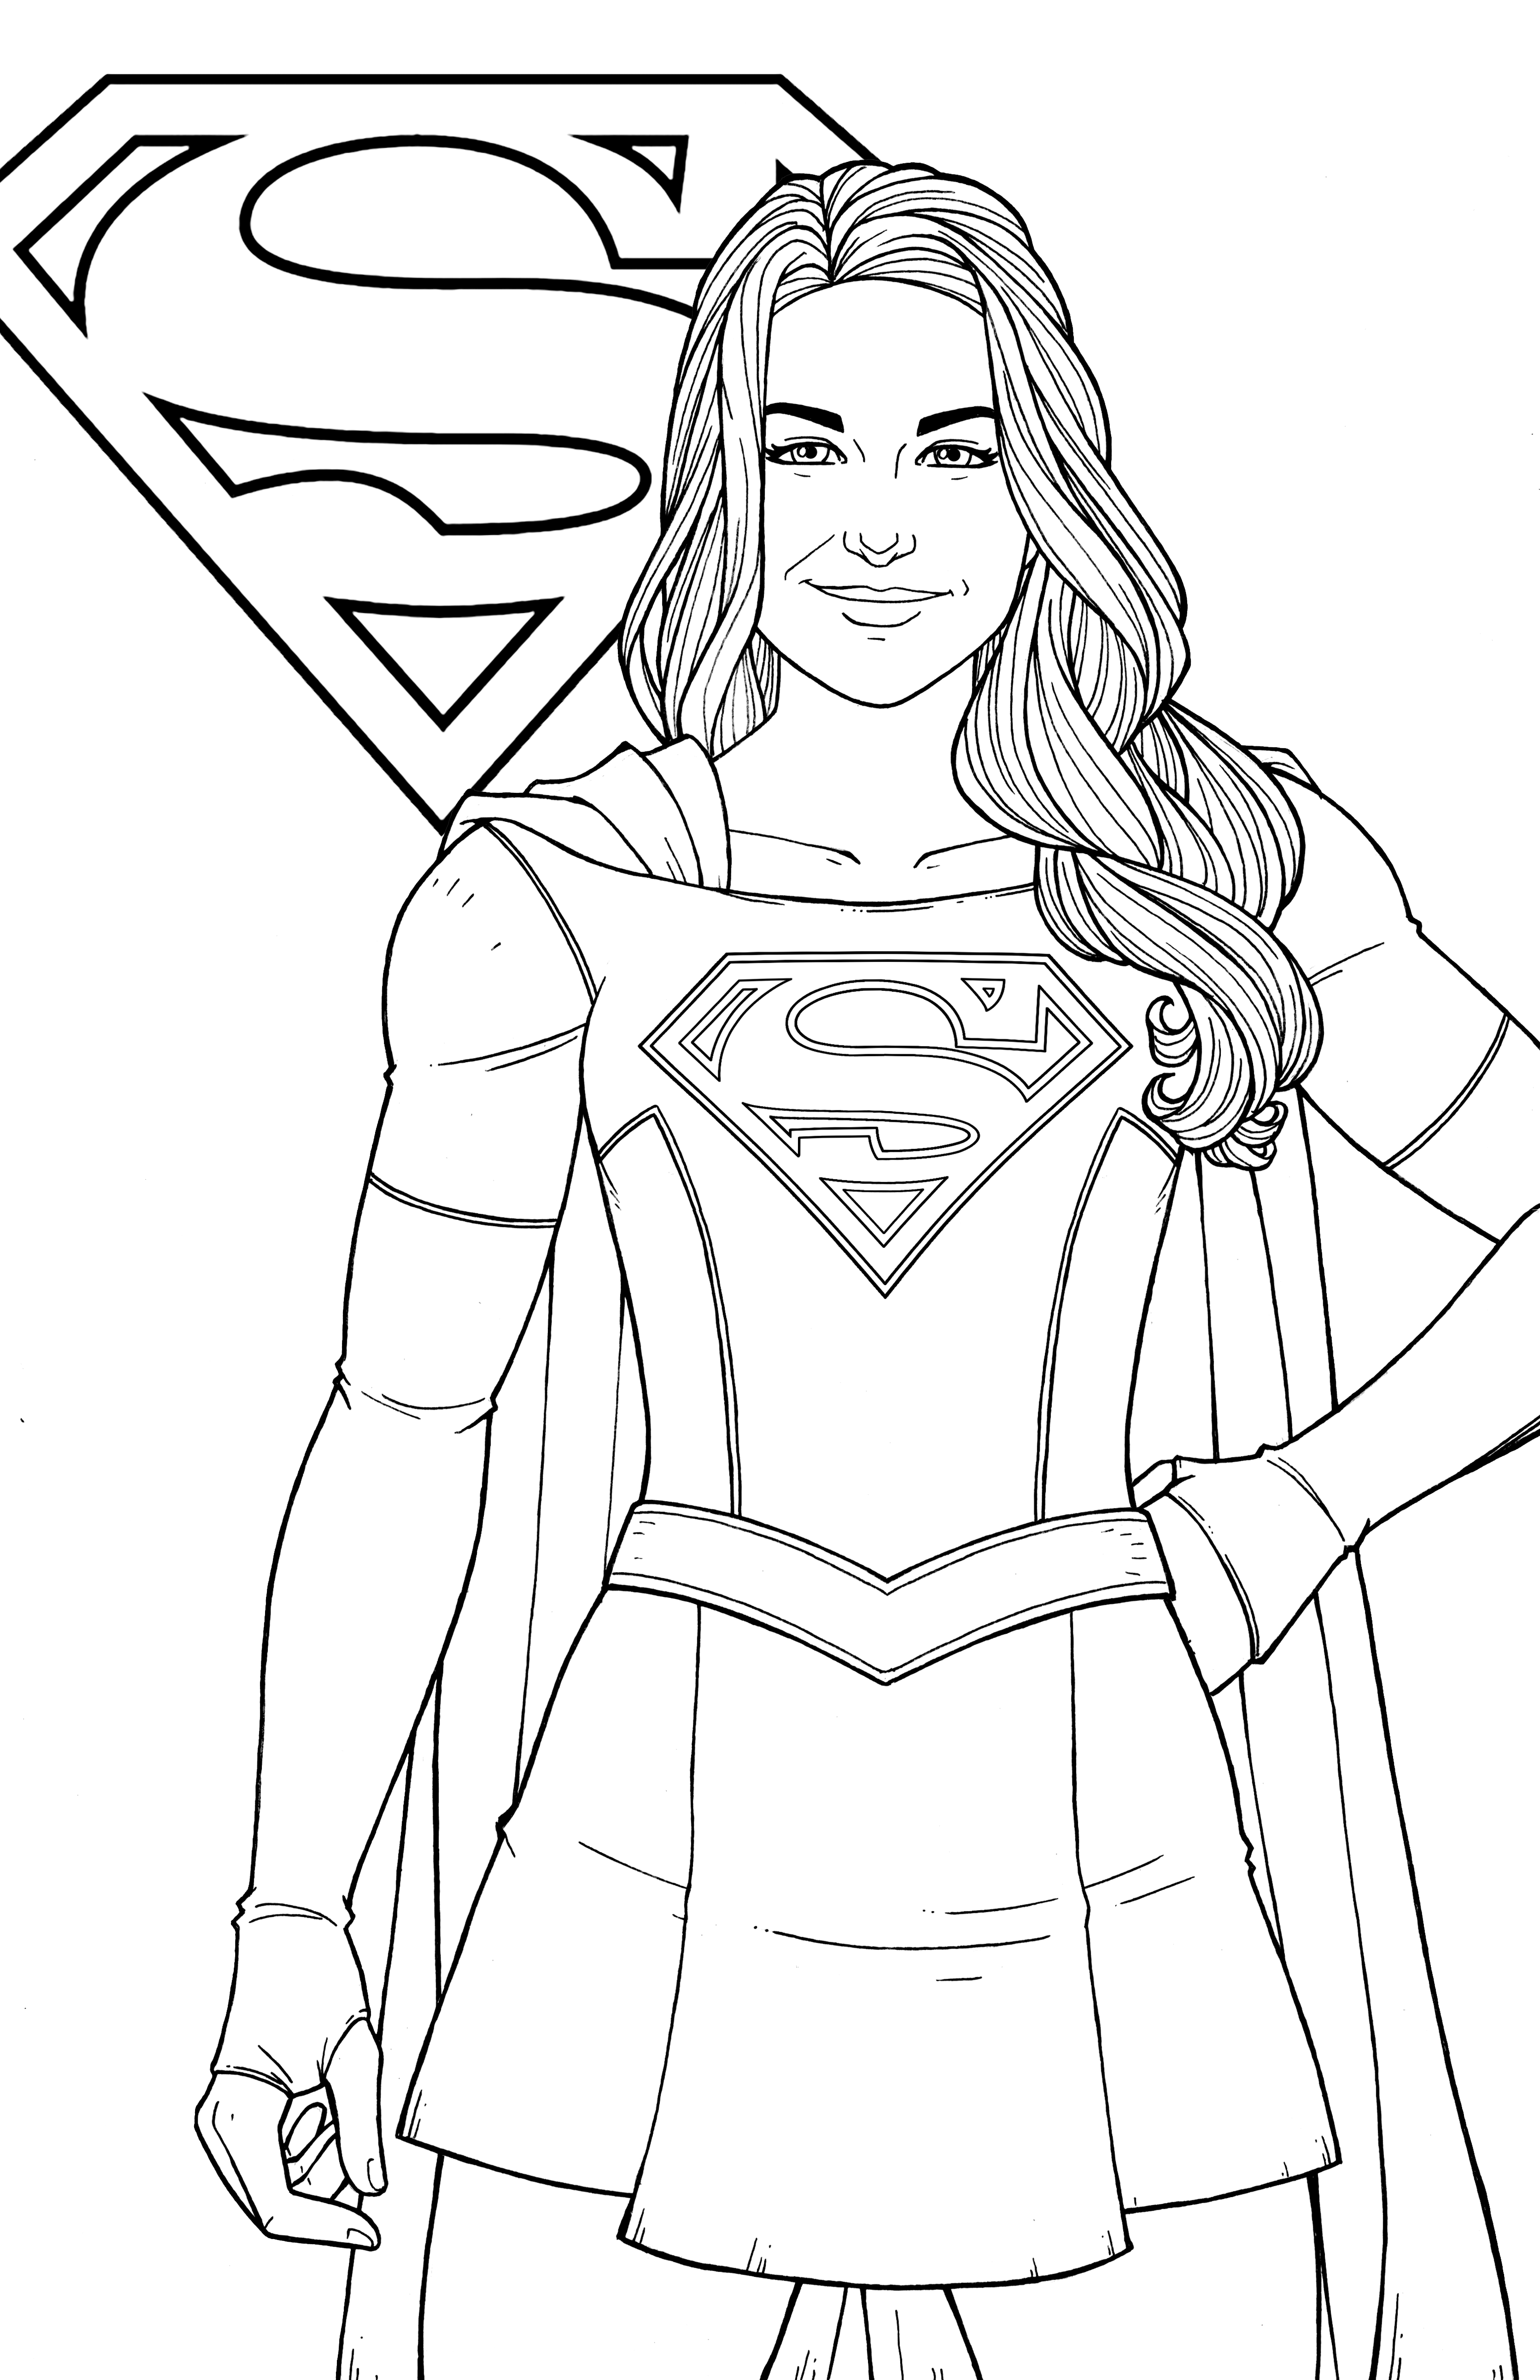 Supergirl - Melissa Benoist by JamieFayX | Coloring pages ...